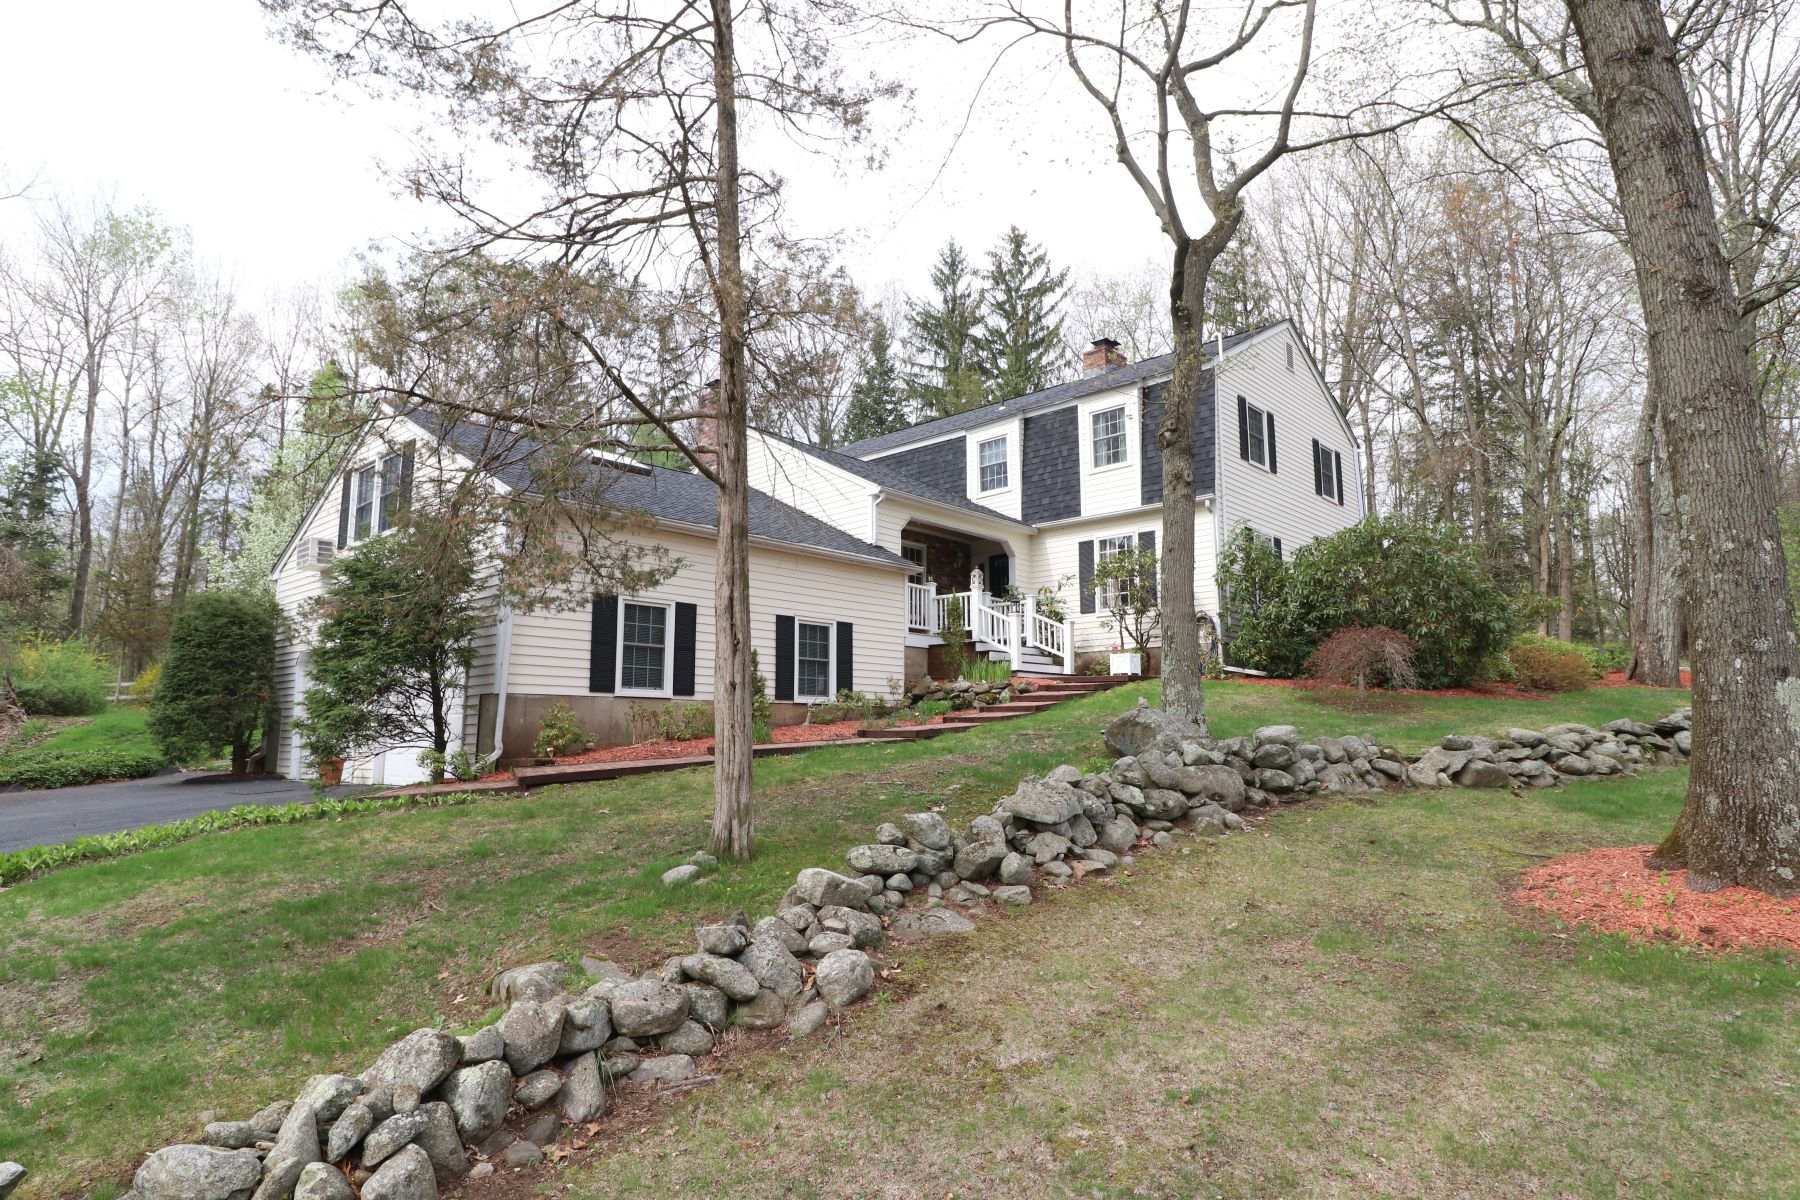 Single Family Home for Sale at Distinctive Architectural Details 6 Bonny Road Brookfield, Connecticut 06804 United States